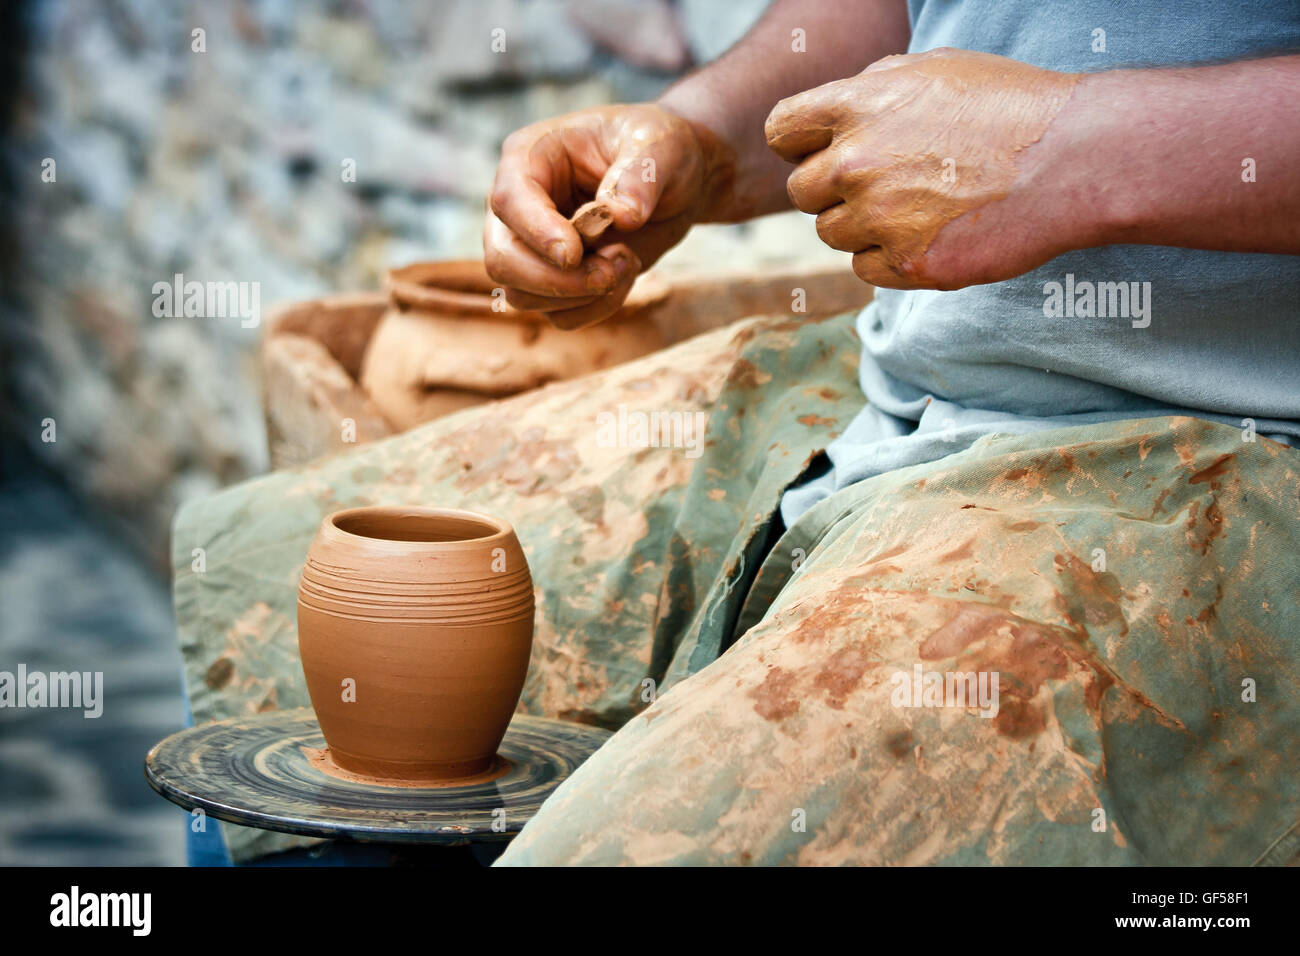 Pottery - Wheel Wedging Clay Stock Photo